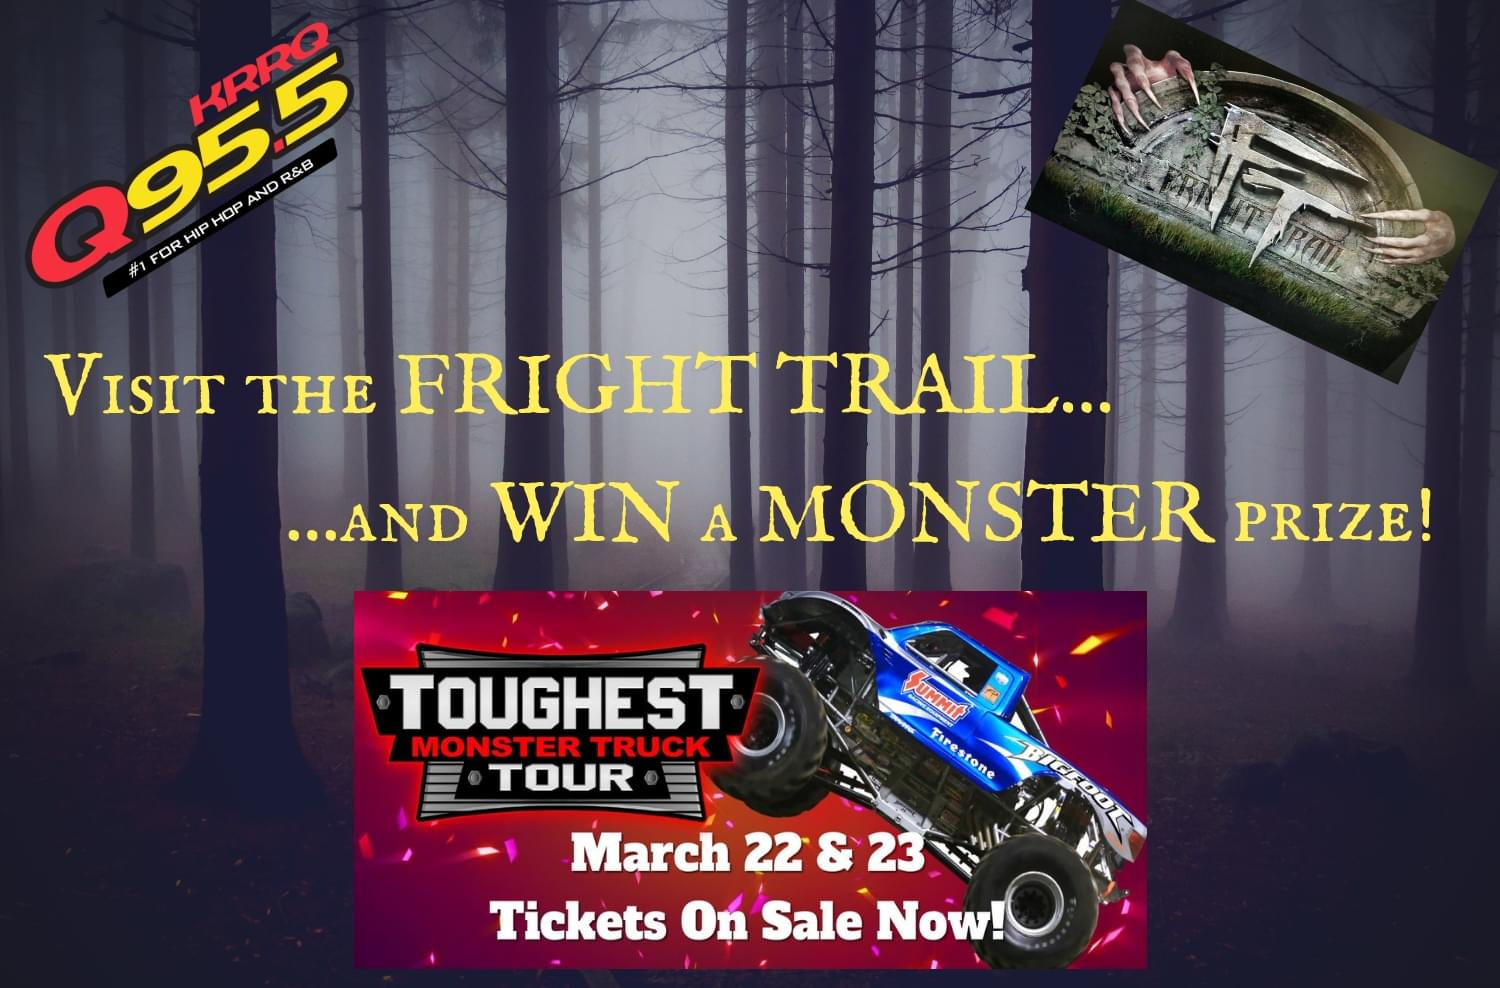 Fright Trail returns for another Halloween season of scares for all of Acadiana!